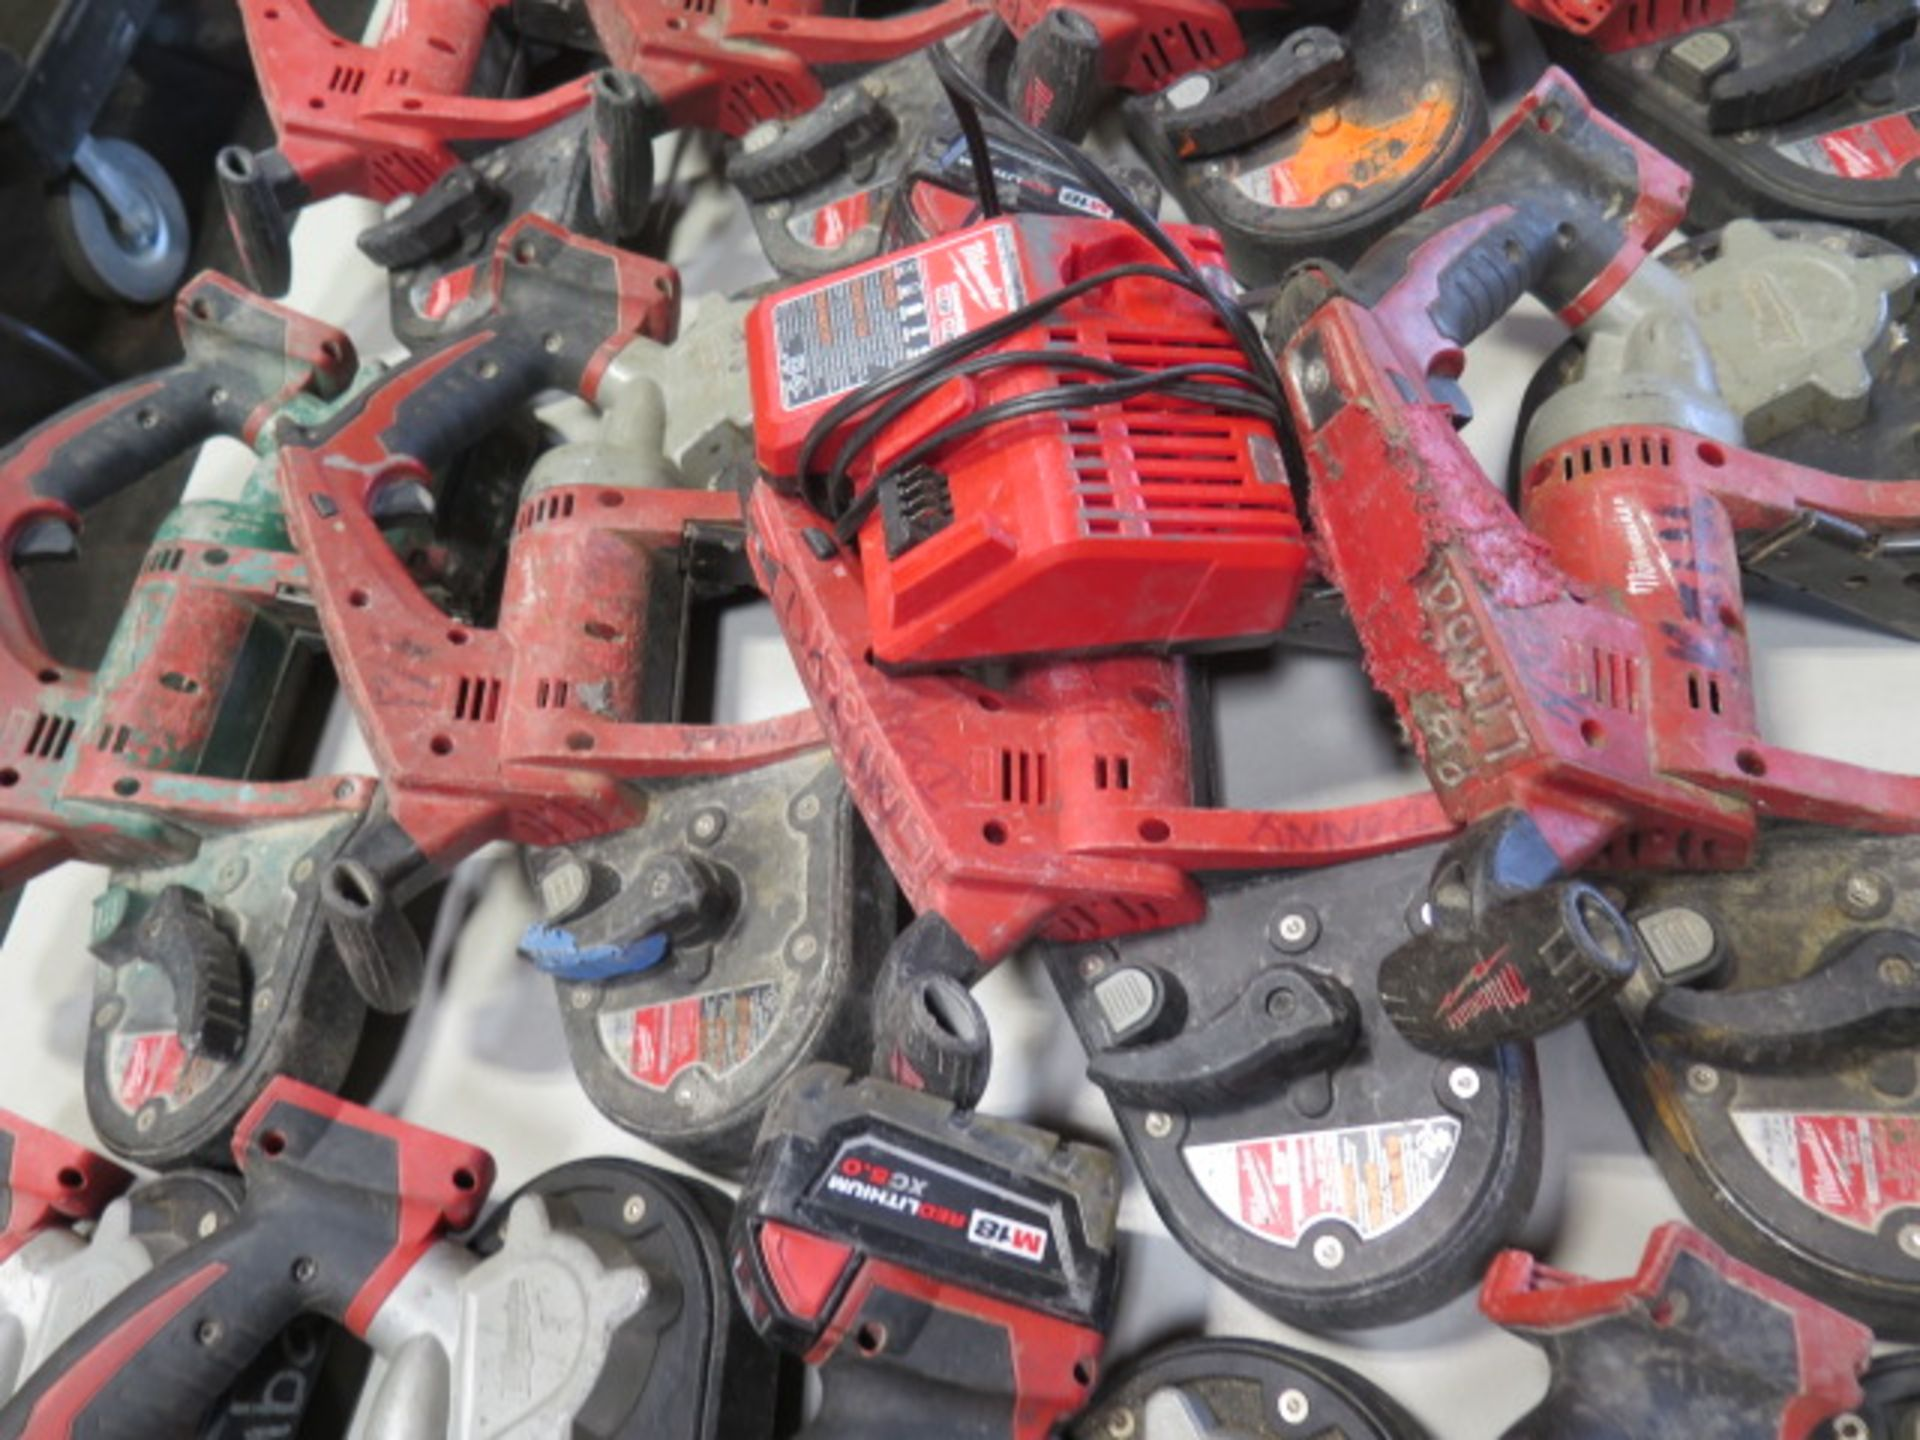 Milwaukee 18 Volt Compact Portable Band Saws (4) (SOLD AS-IS - NO WARRANTY) - Image 3 of 7